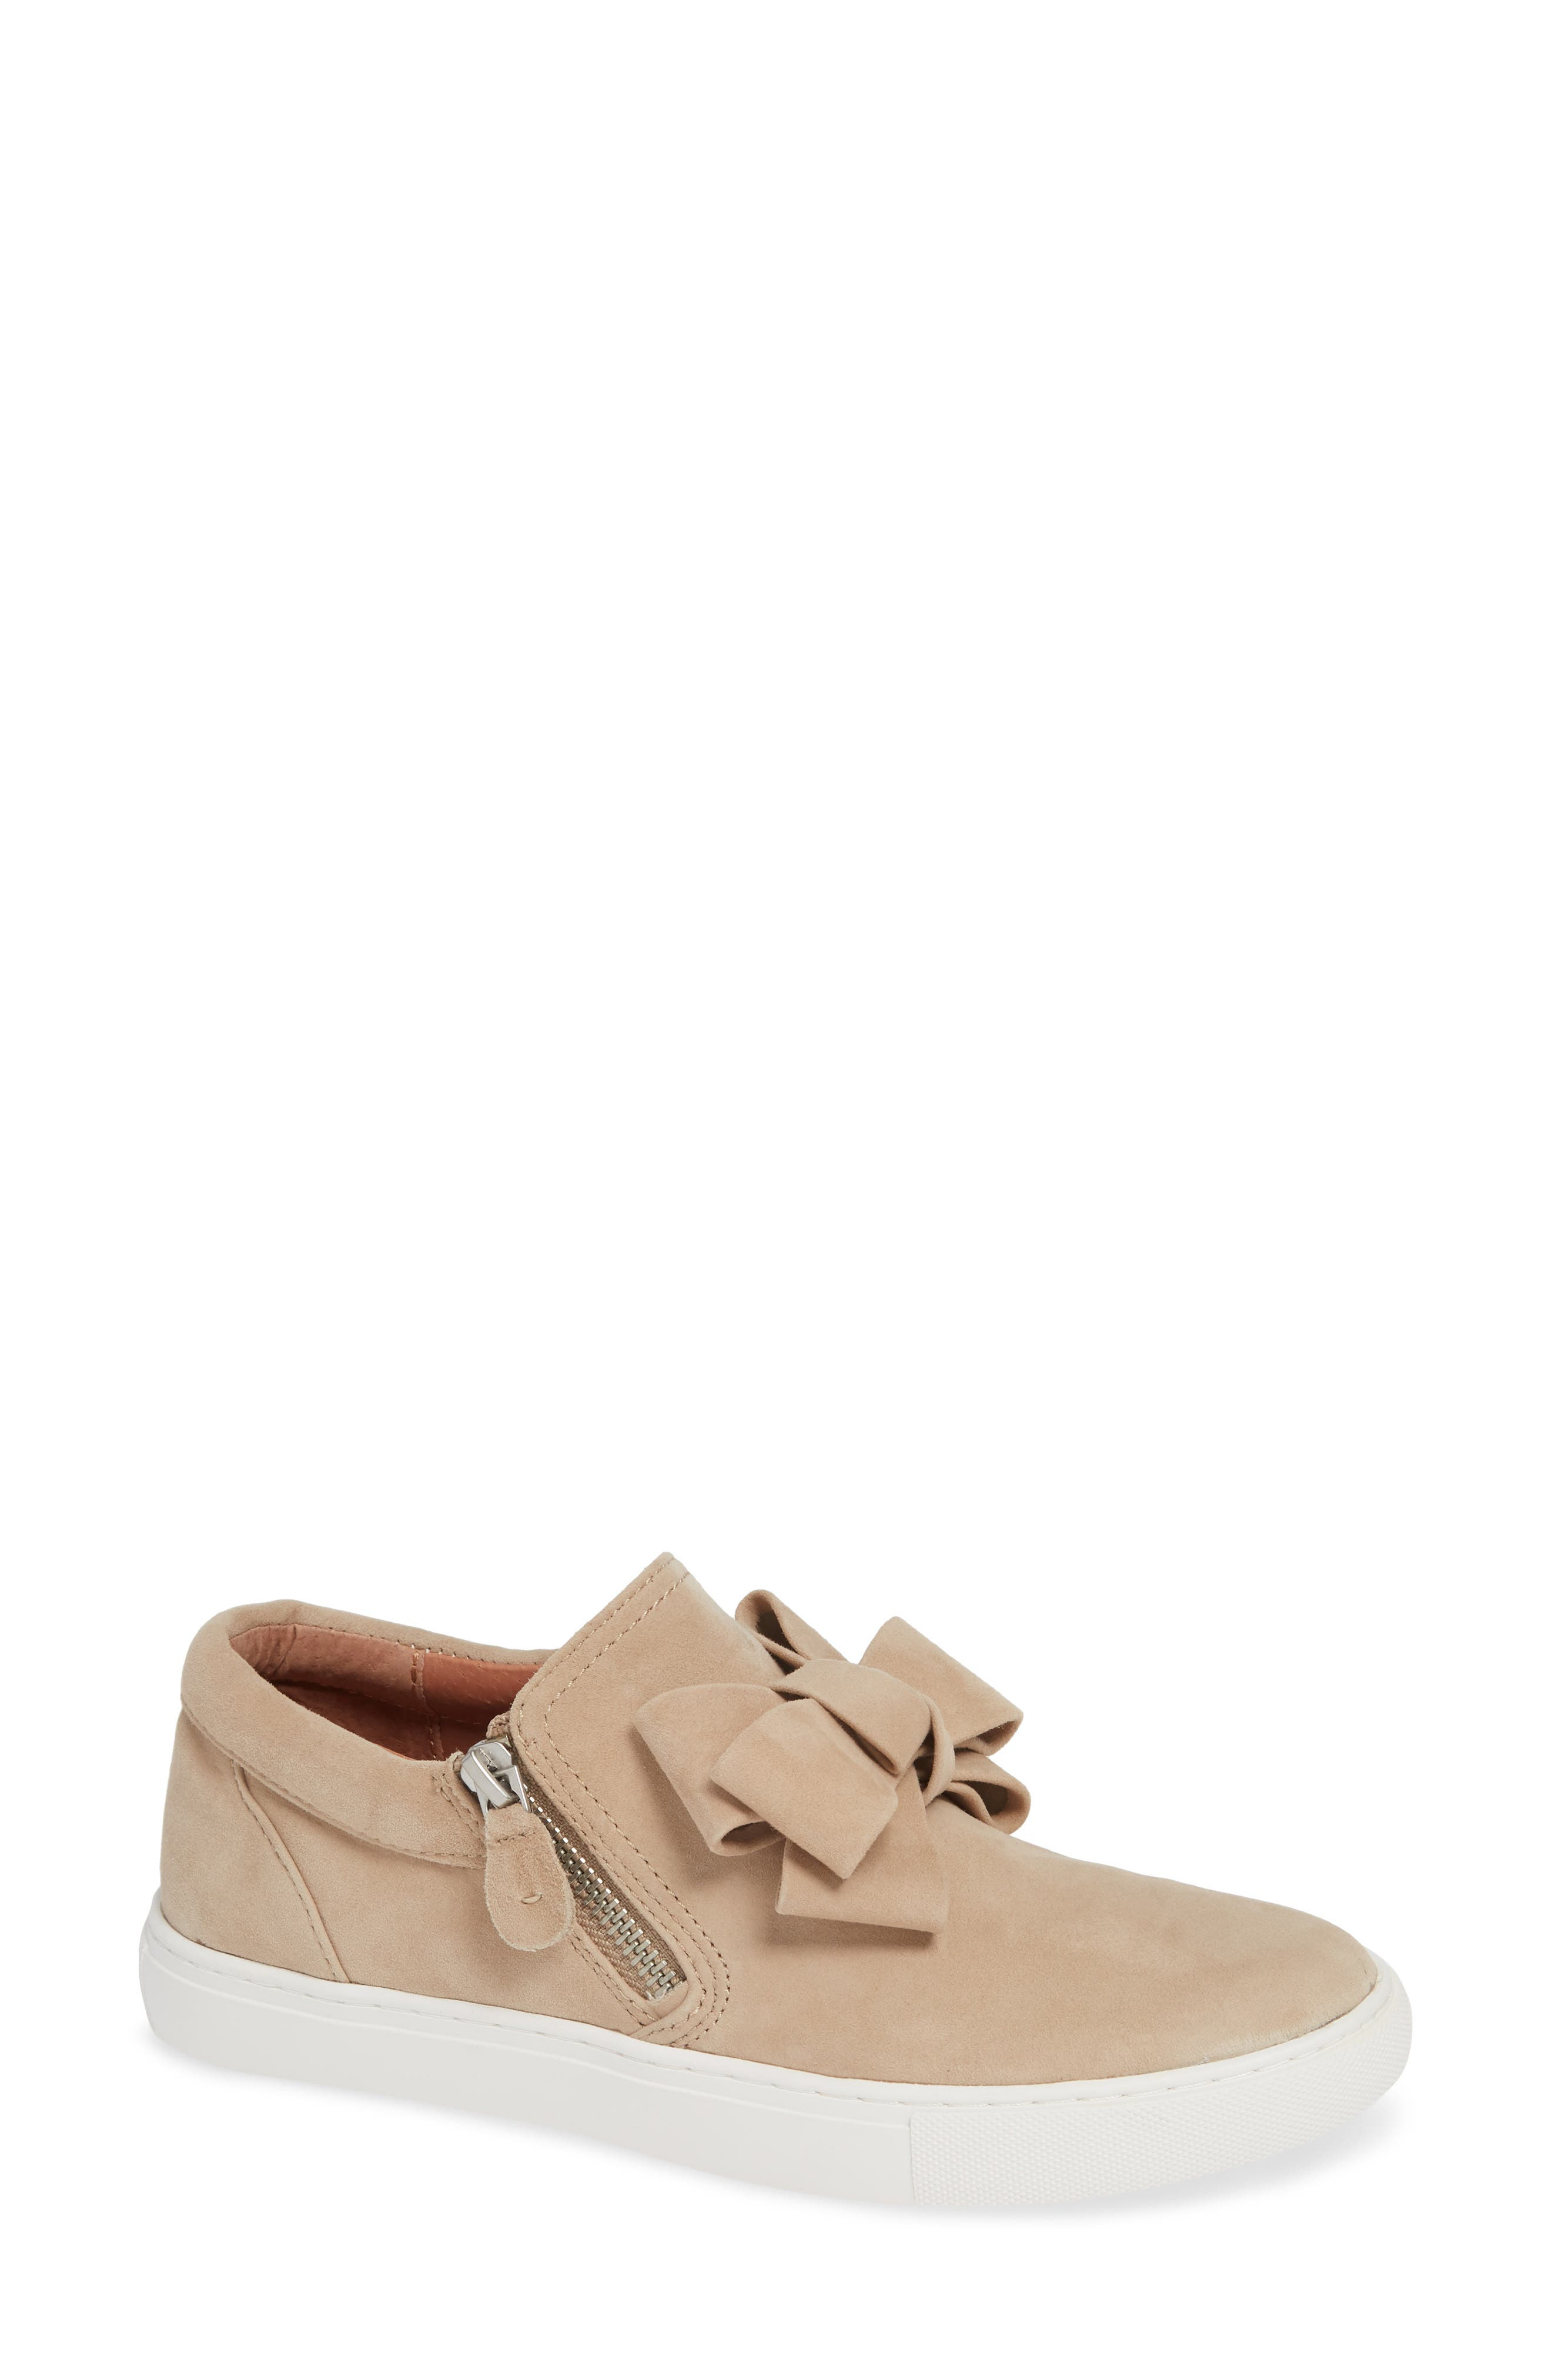 GENTLE SOULS BY KENNETH COLE Lowe Bow Sneaker, Main, color, CAFE SUEDE